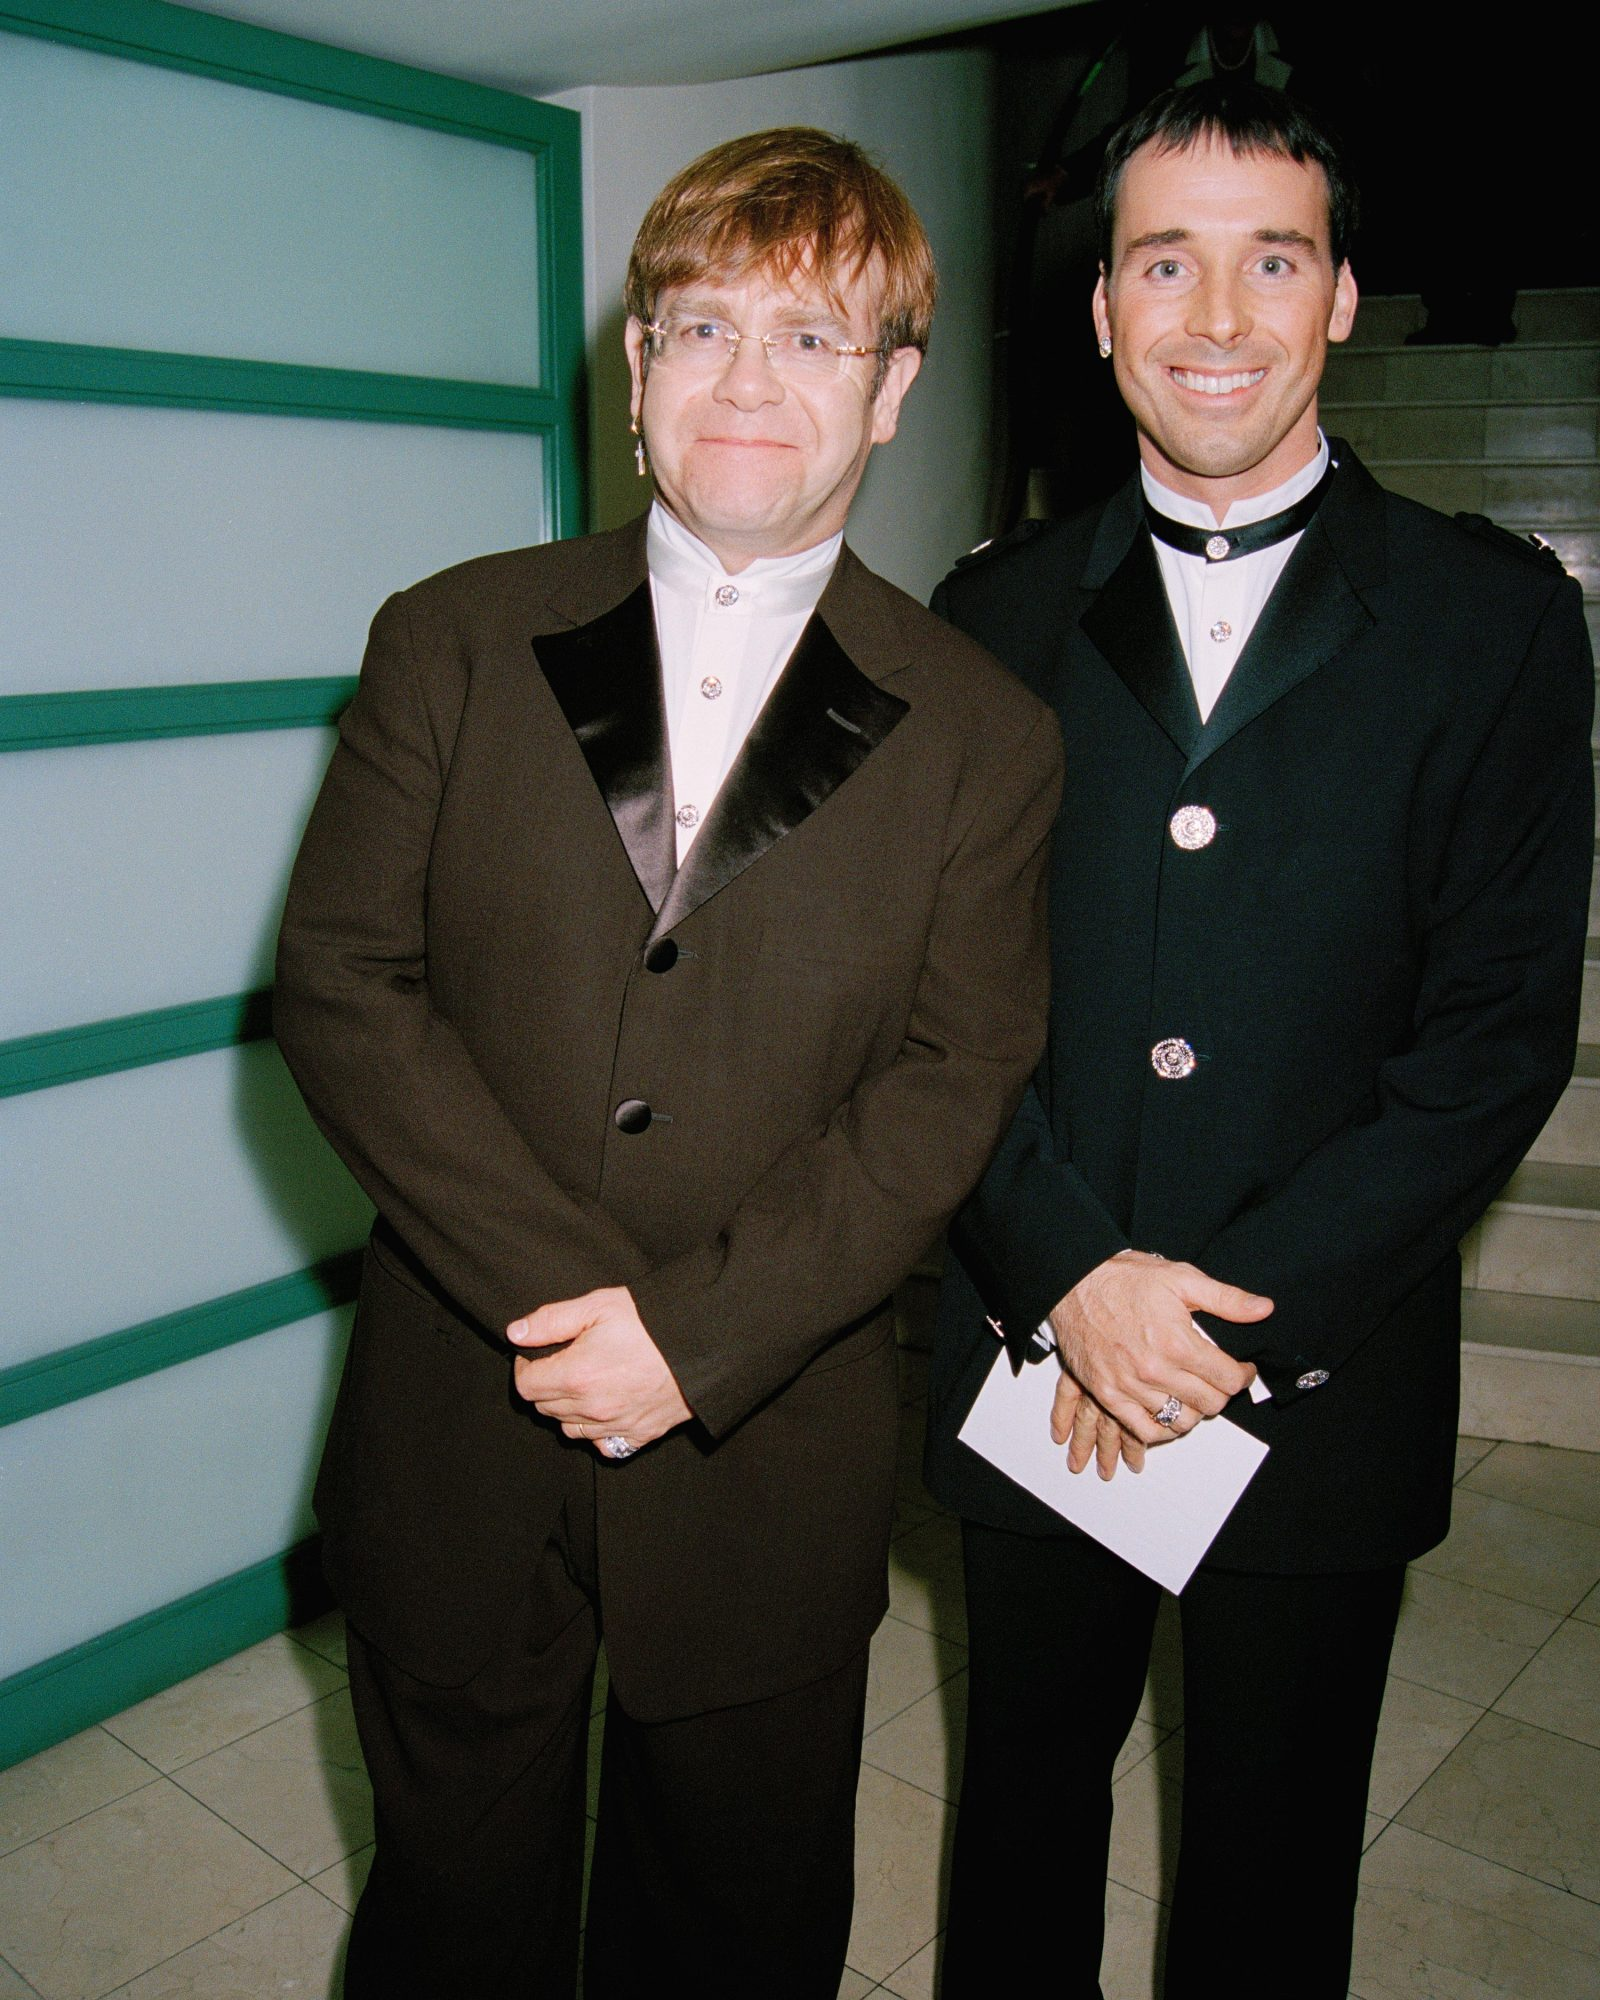 throwbacks-elton-john-david-furnish-0616.jpg